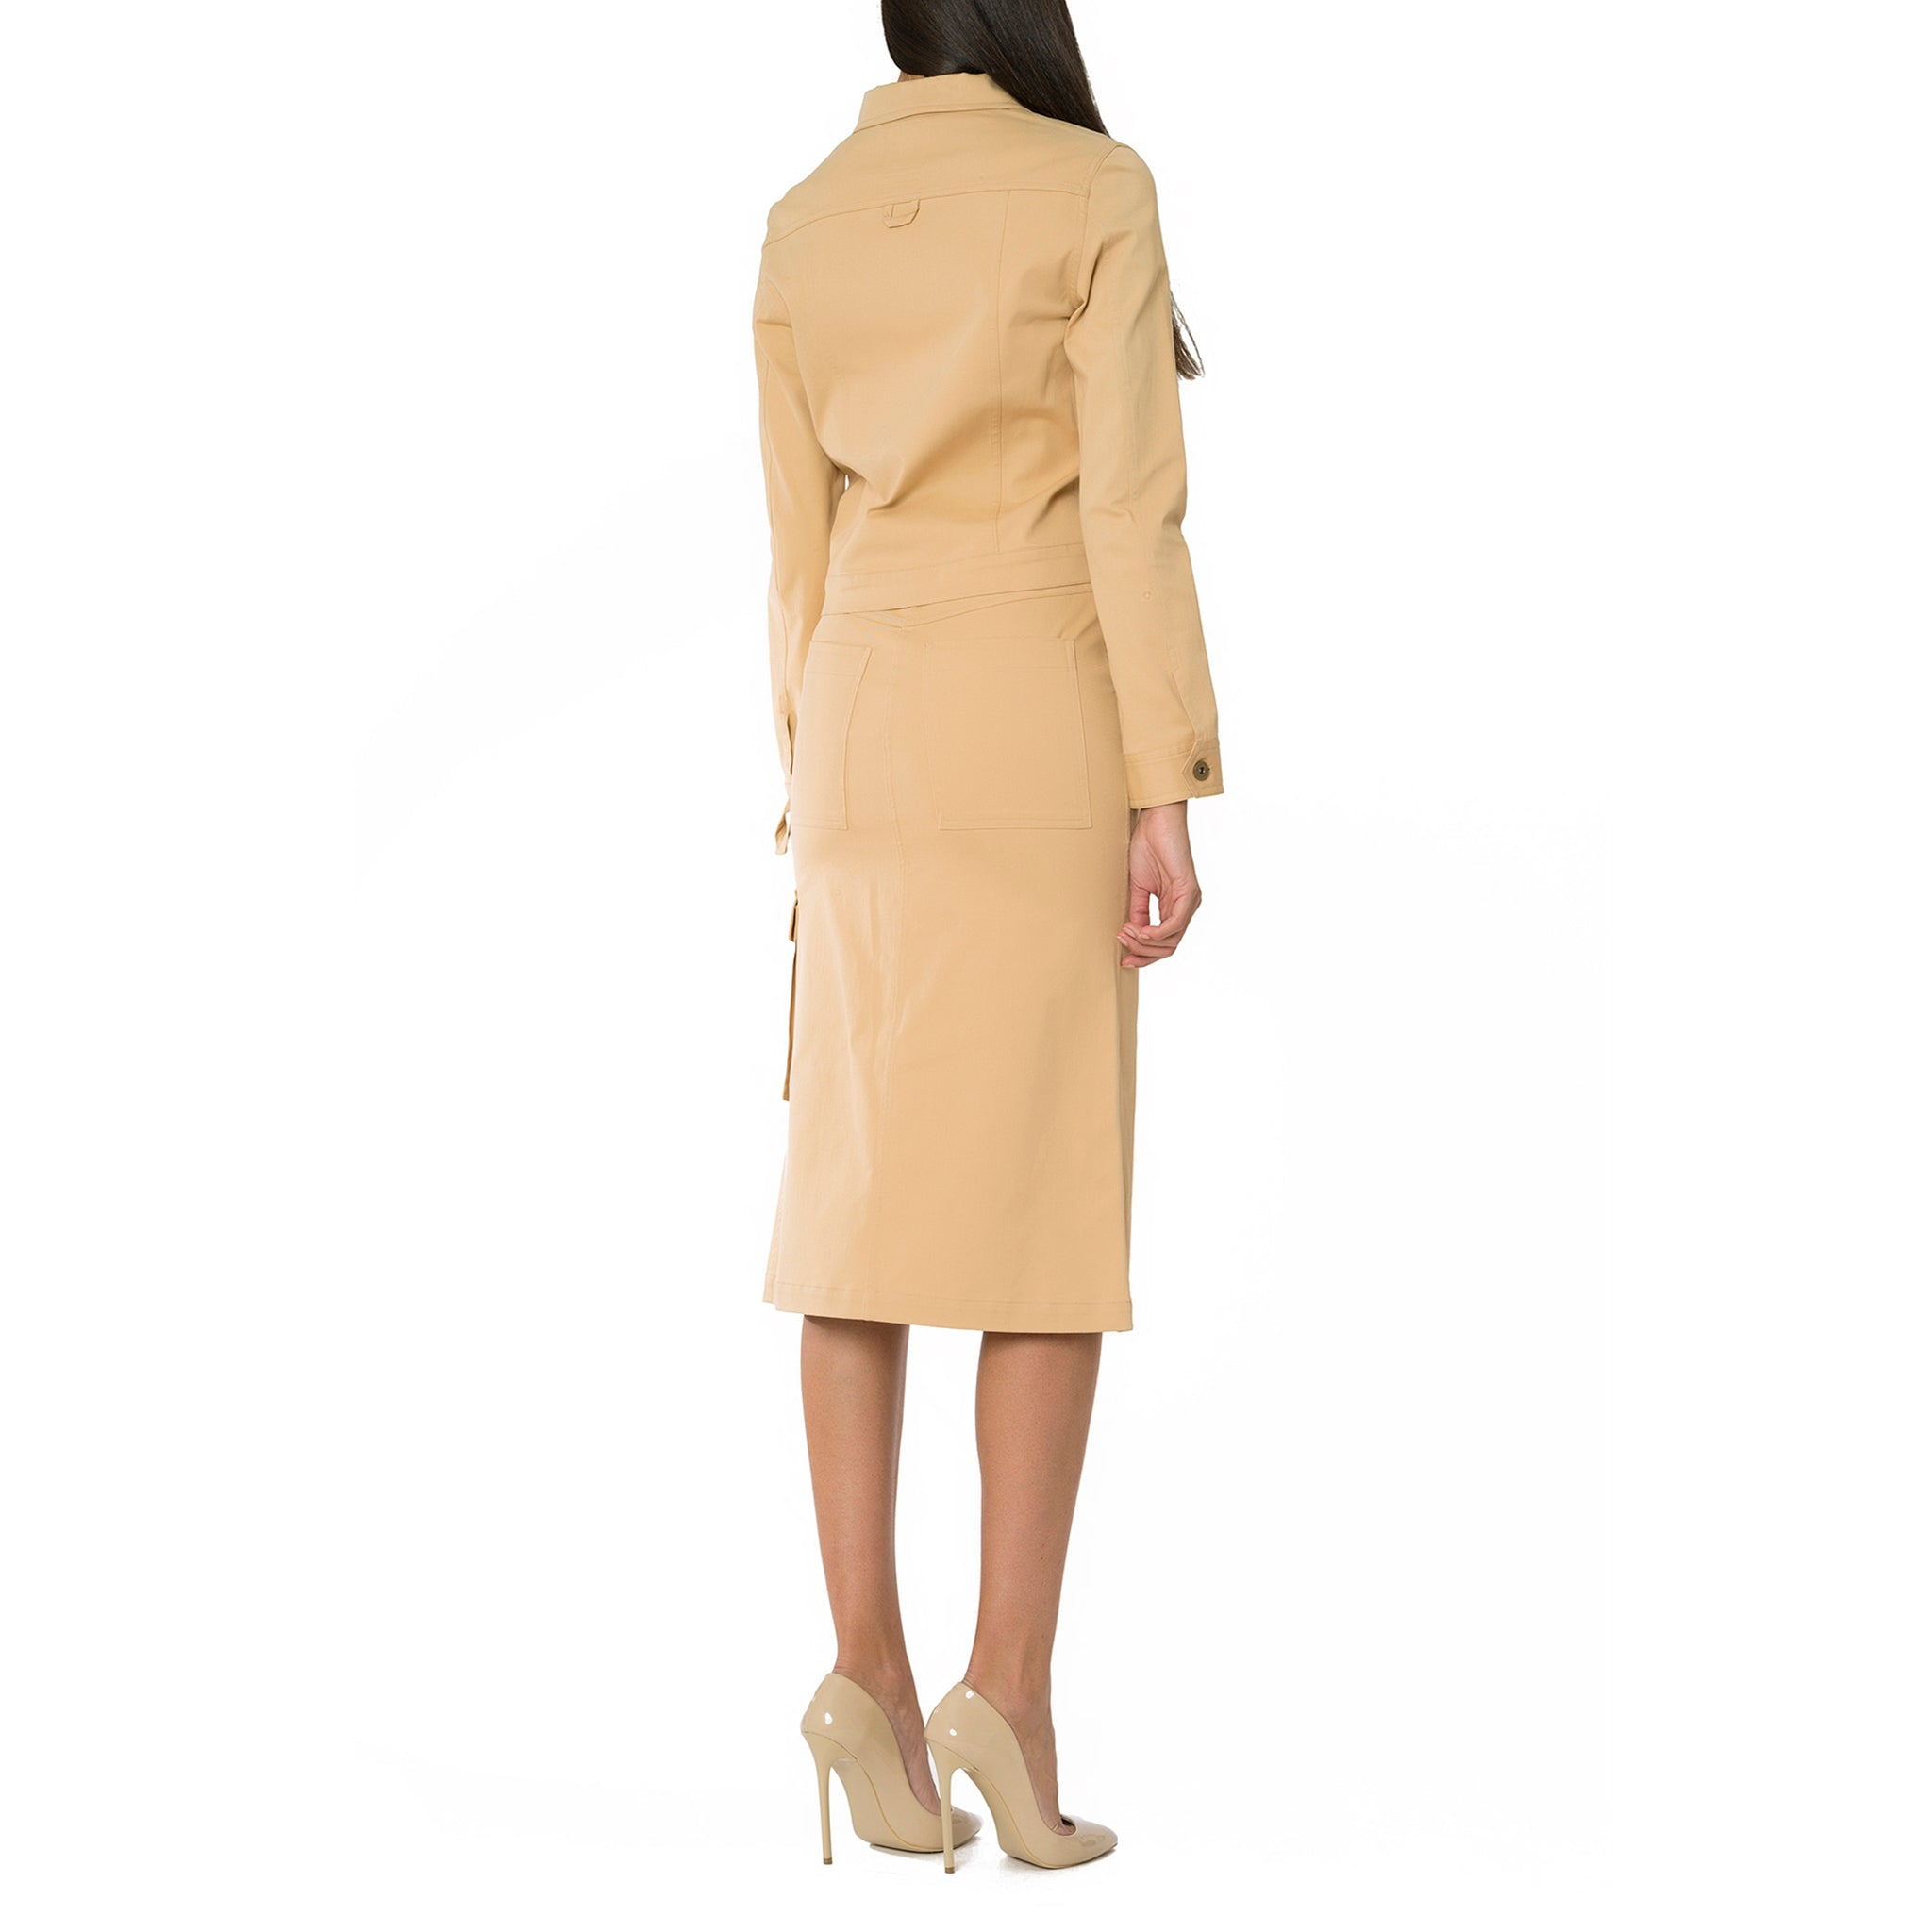 Beige Midi Skirt with Split